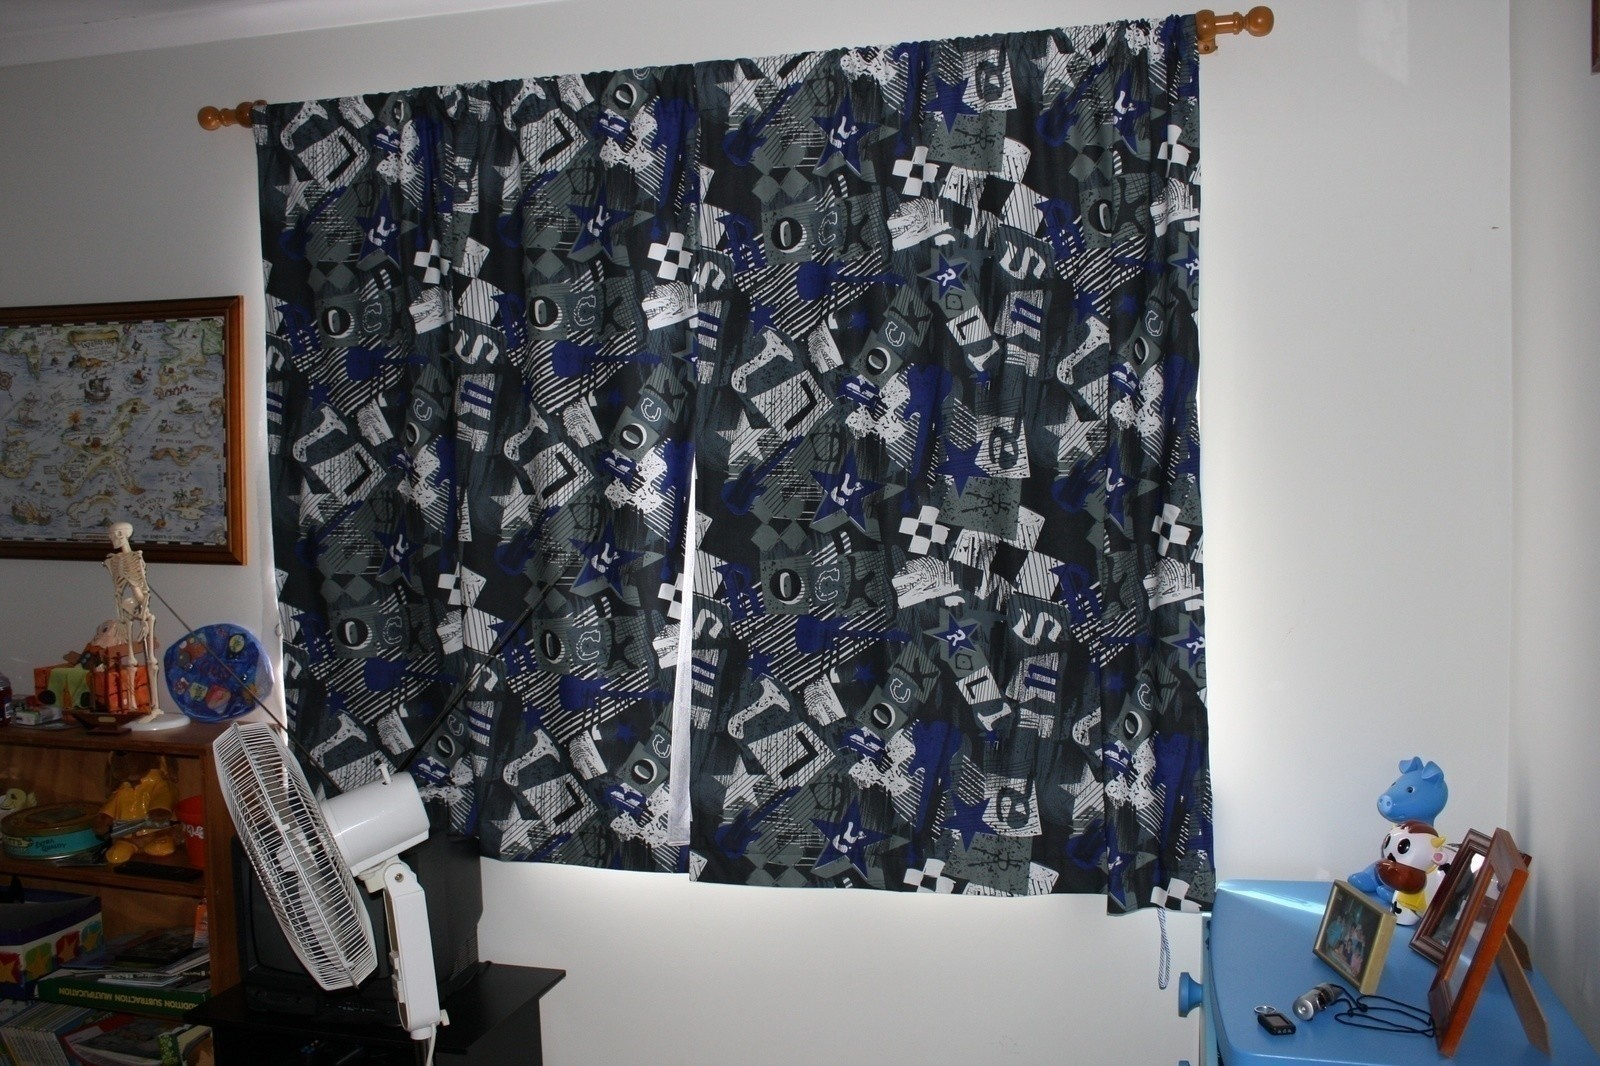 Rock N Roll Curtains  A CurtainBlinds  Sewing on Cut